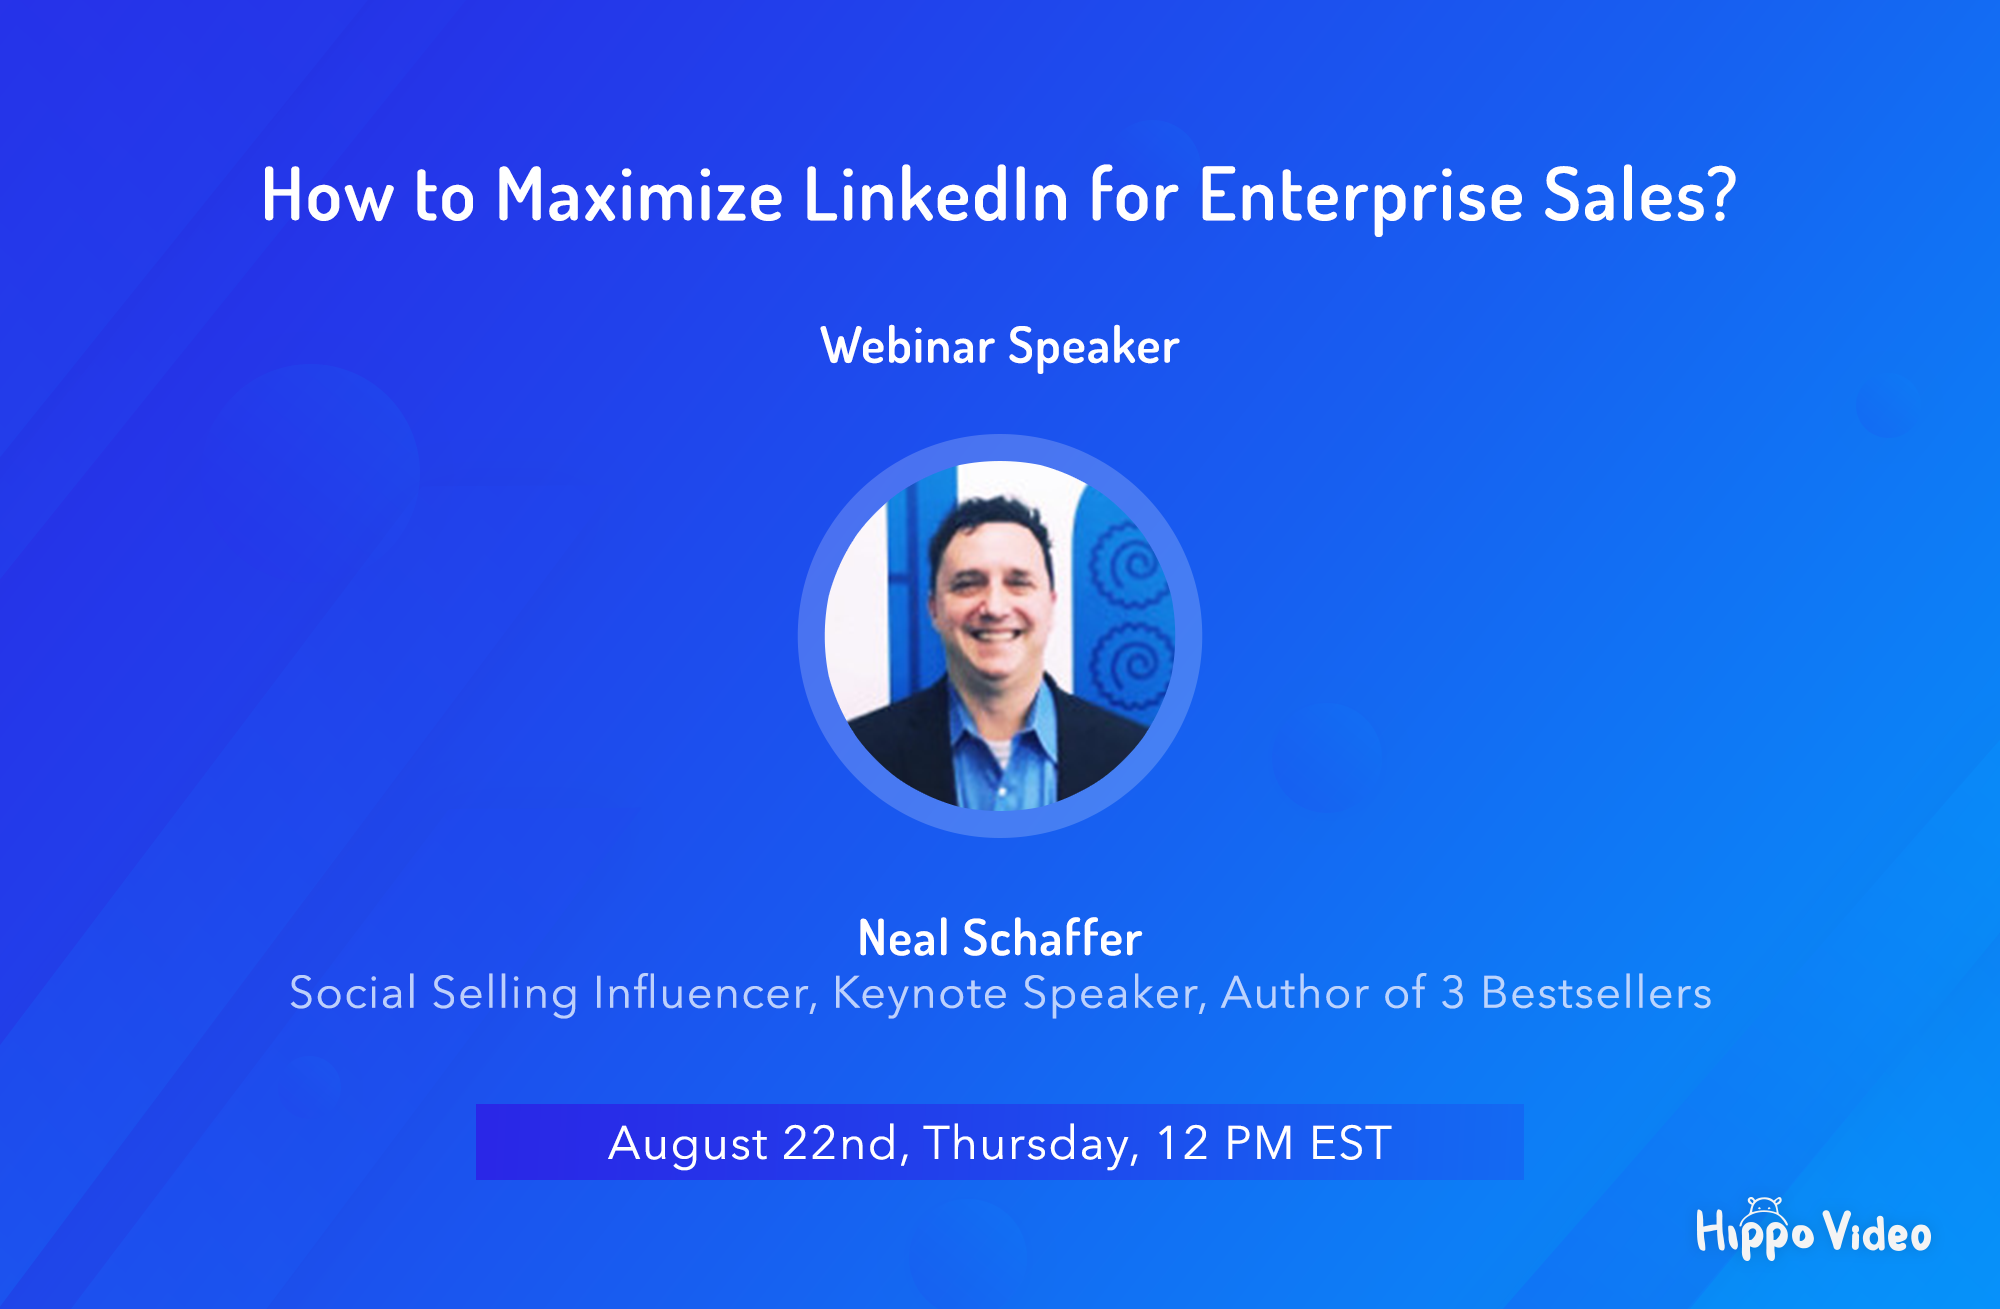 Neal Schaffer Webinar - LinkedIn for enterpise sales